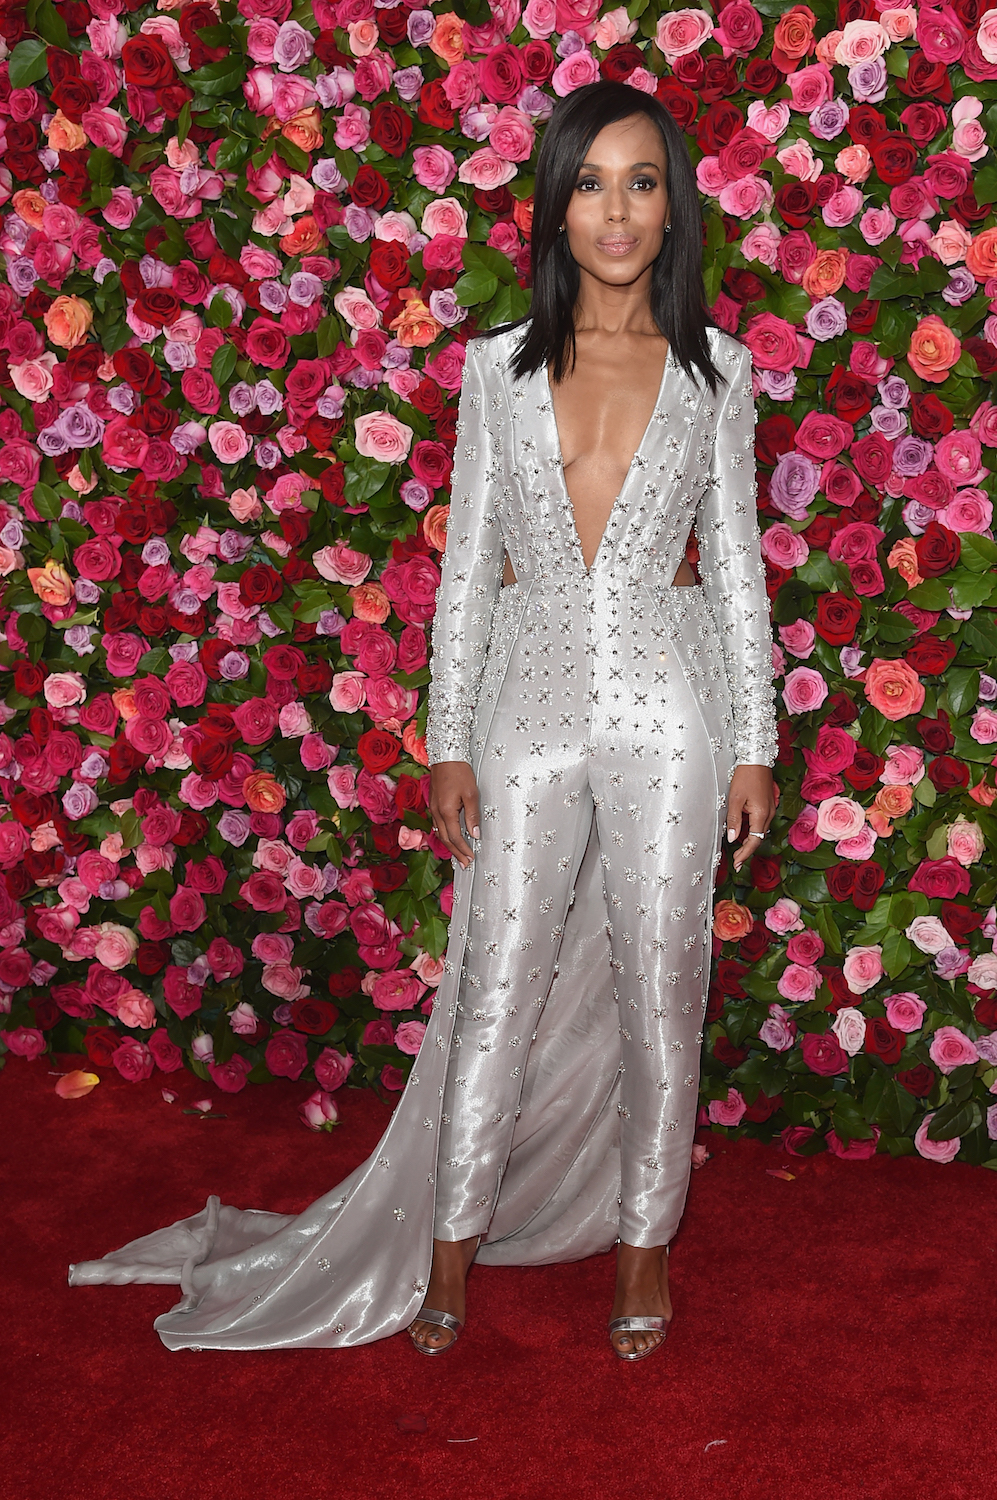 NEW YORK, NY - JUNE 10: Kerry Washington attends the 72nd Annual Tony Awards at Radio City Music Hall on June 10, 2018 in New York City. (Photo by Jamie McCarthy/Getty Images)